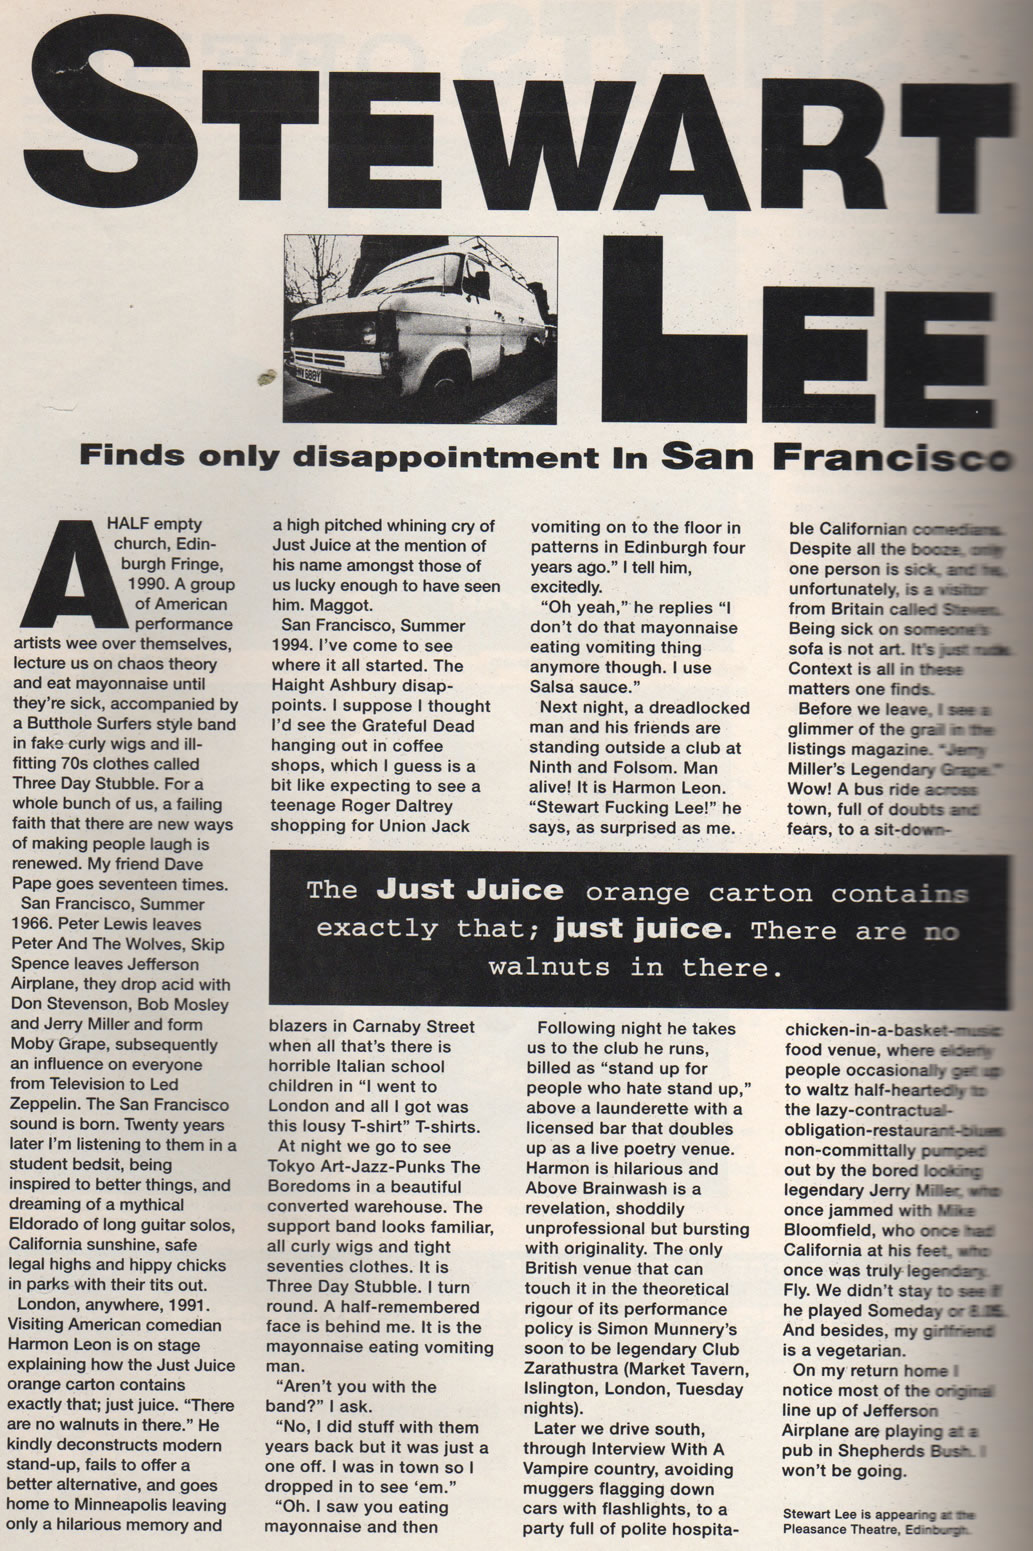 Stewart Lee finds only disappointment in San Fransisco